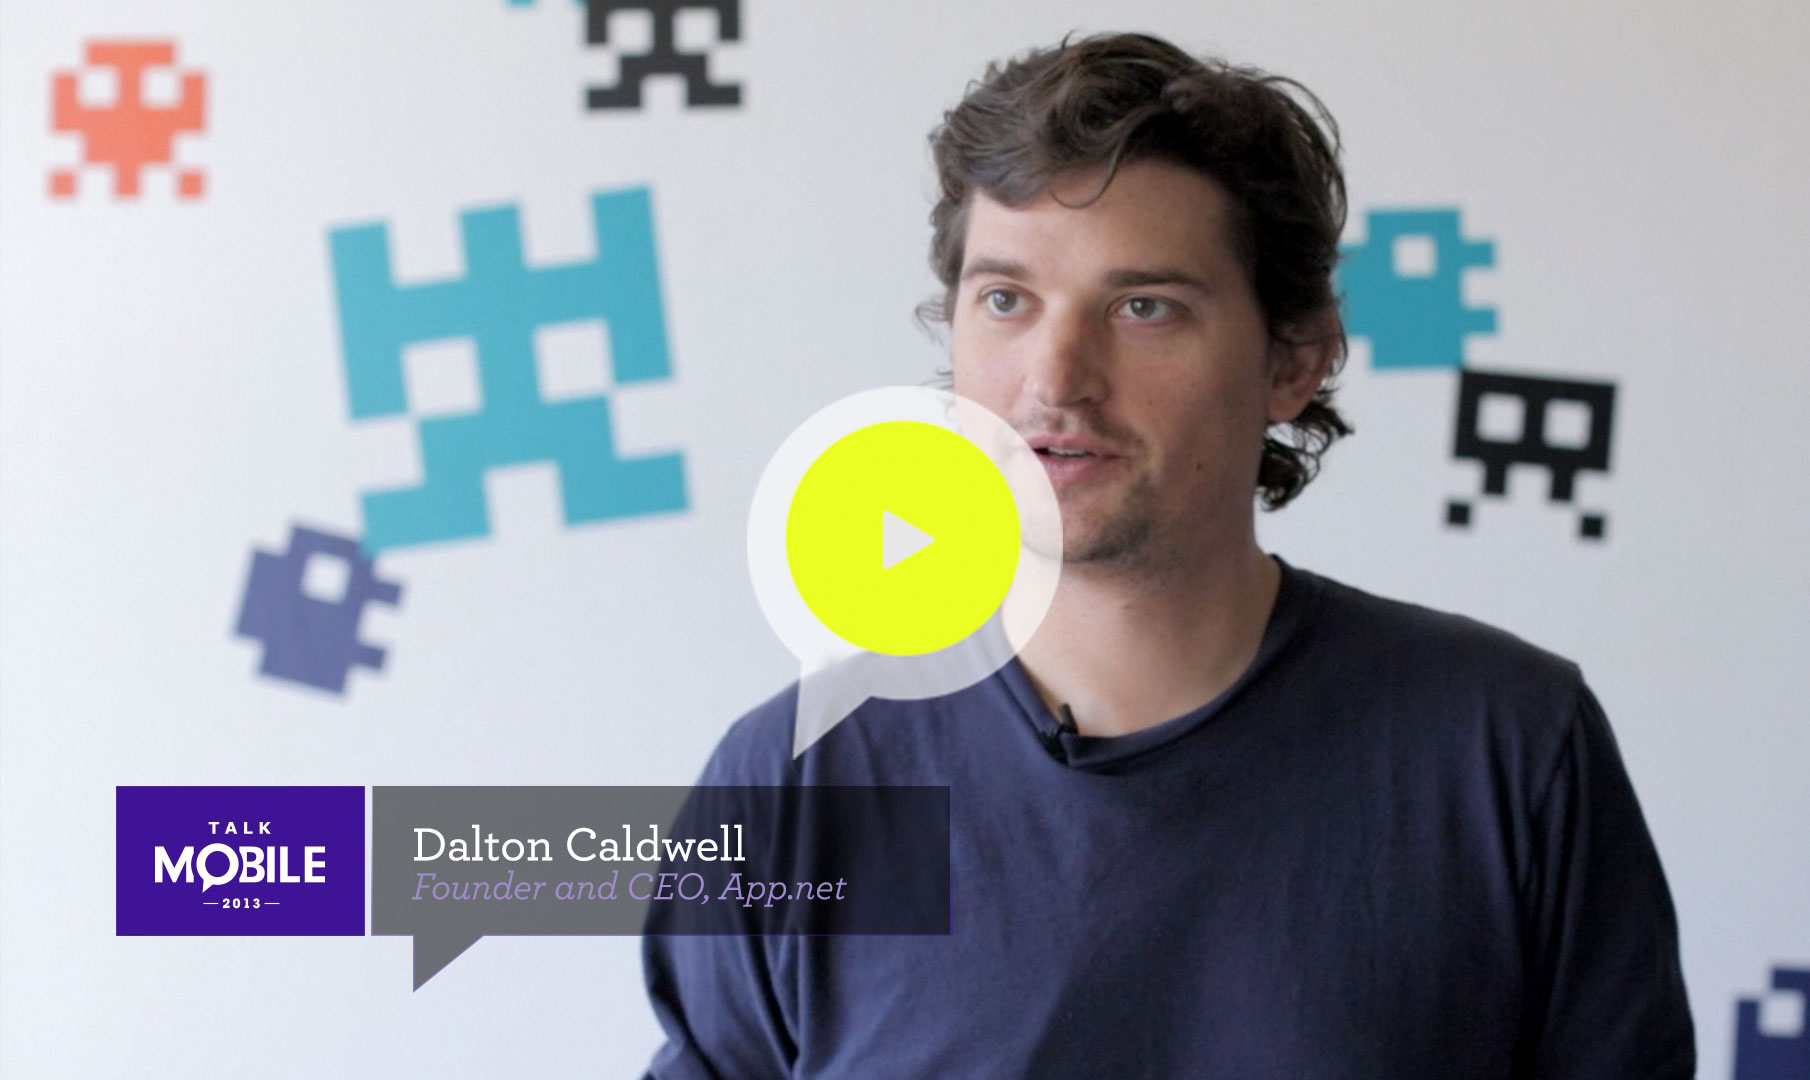 Watch Dalton Caldwell discuss the history of social networking.